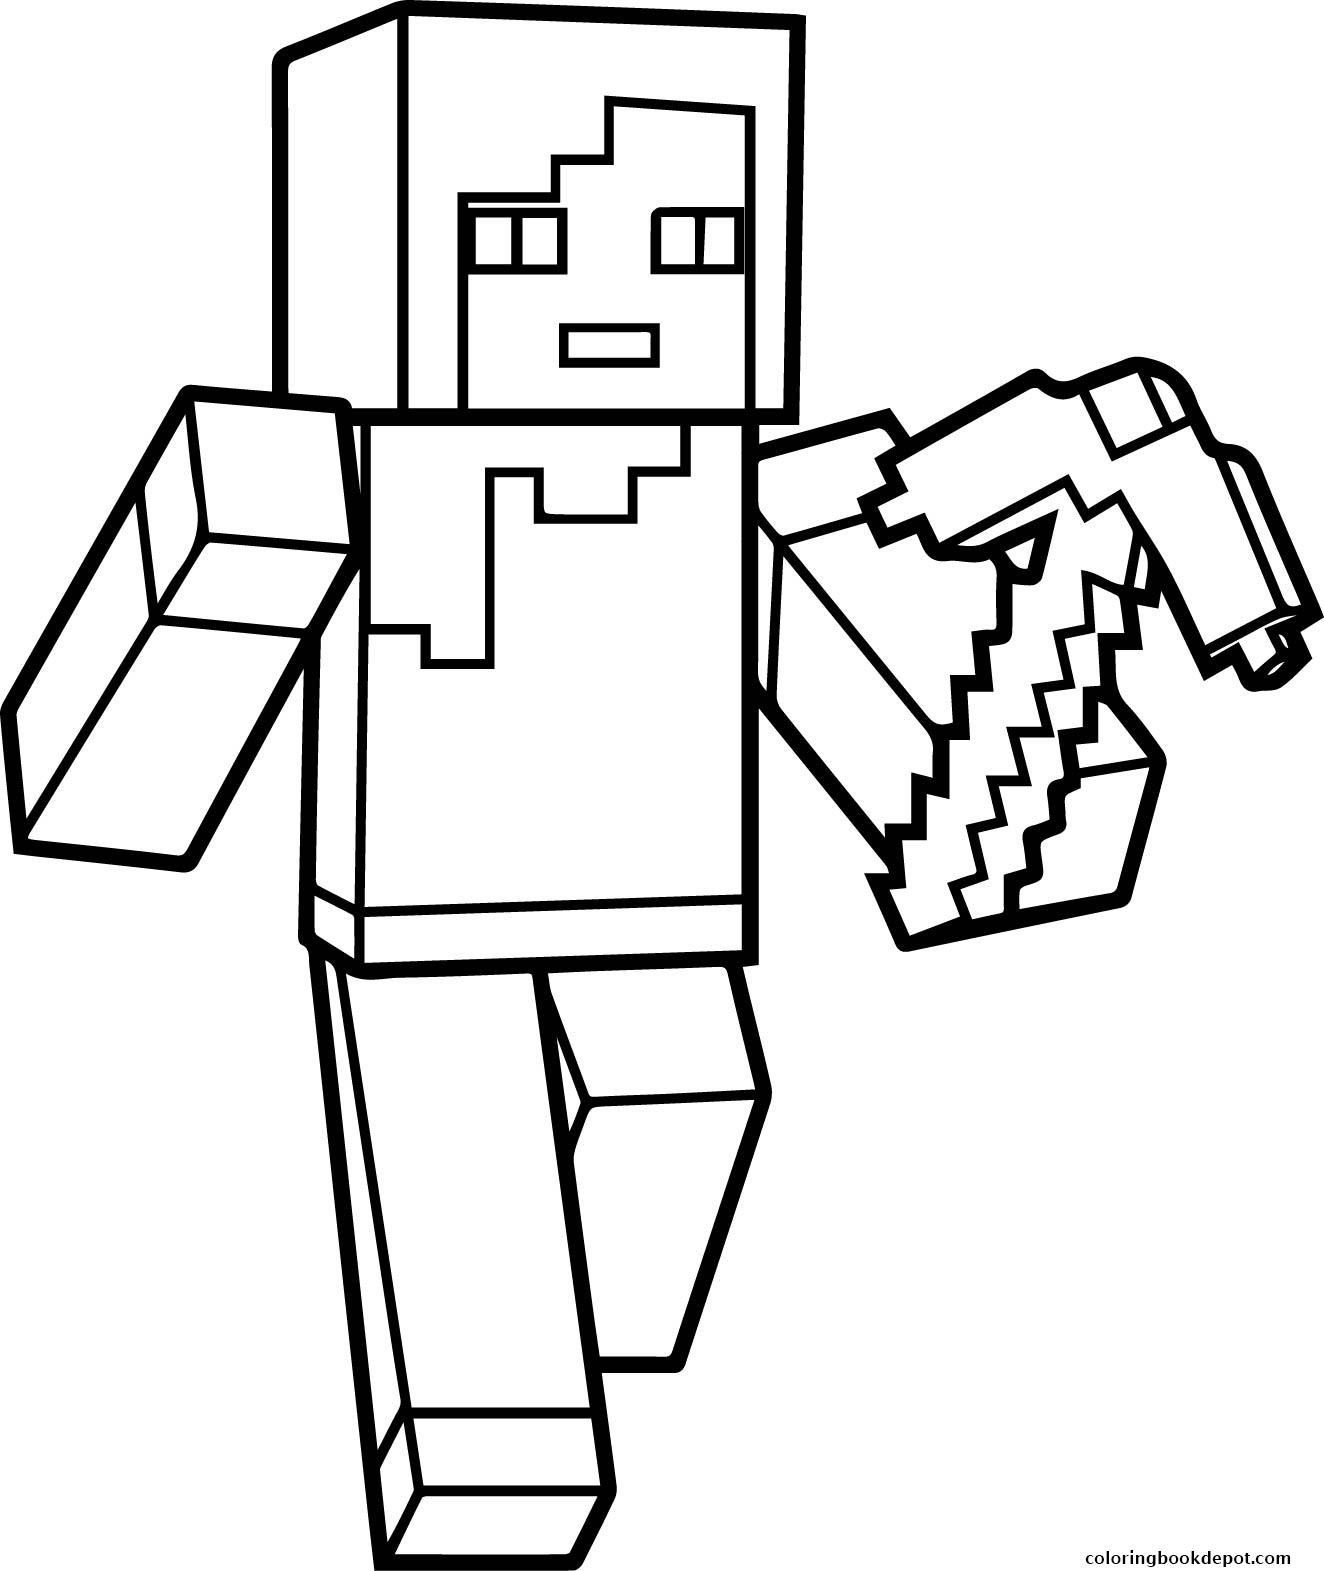 coloring pages coloring book - minecraft hd draw coloring pages 5451